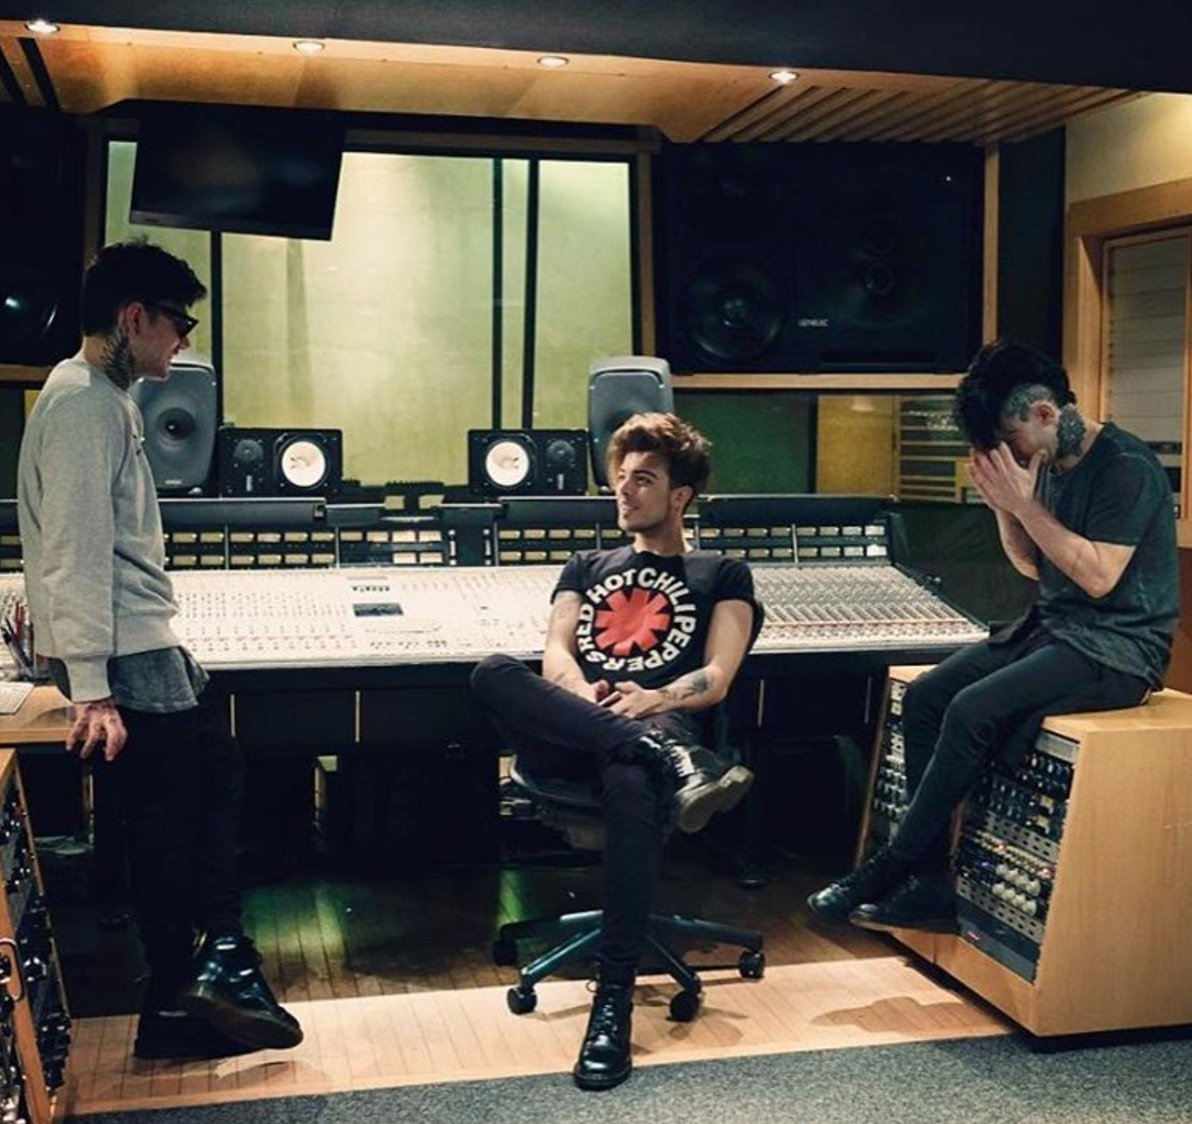 #ThrowbackThursday... Our favourite Italians, @TheKolors, recording in Studio B. https://t.co/2o7xgx0cF7